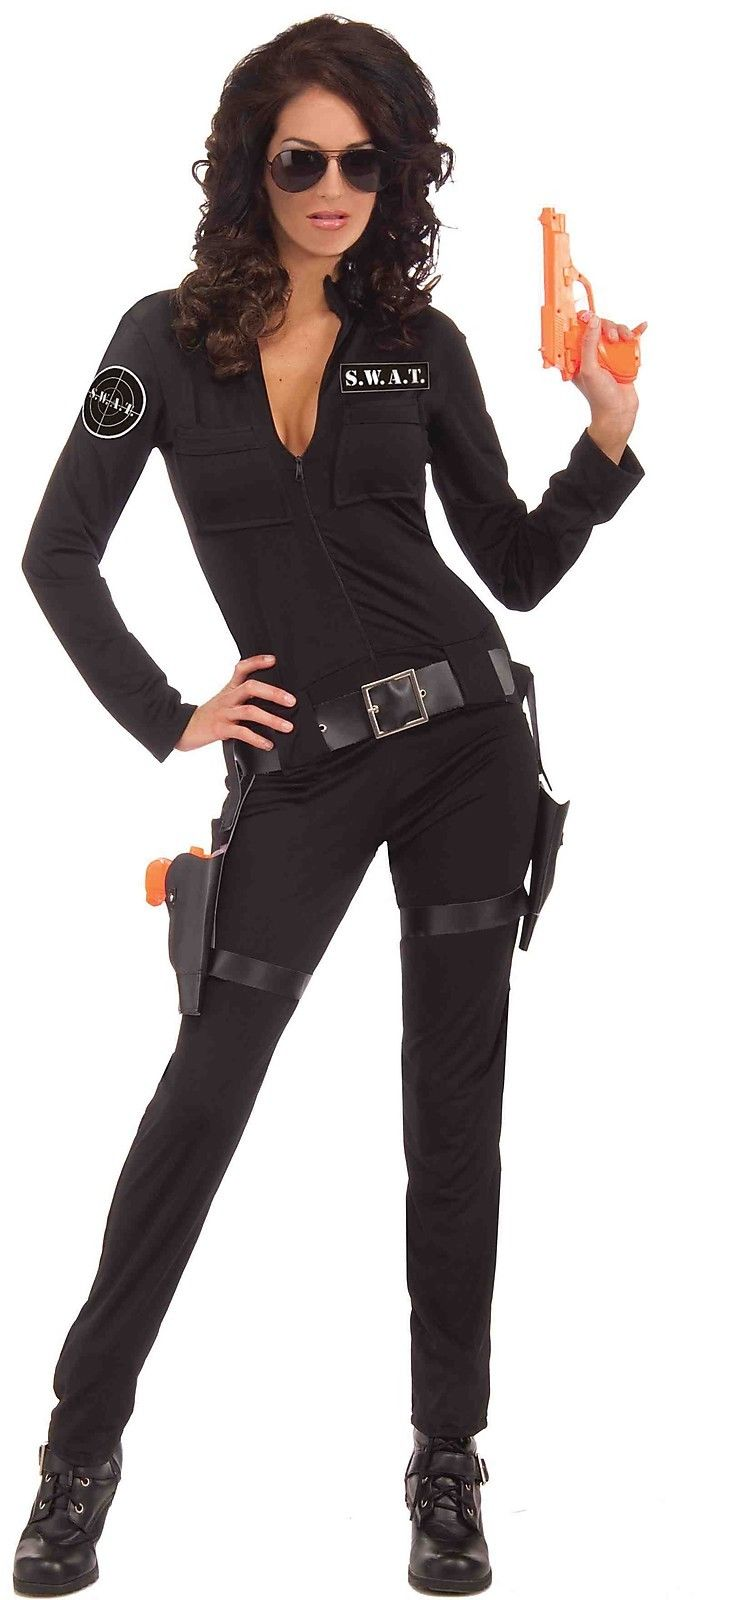 Sexy SWAT Woman Cop Police Officer Jumpsuit Adult Womens Costume NEW ... 1505e153a1496